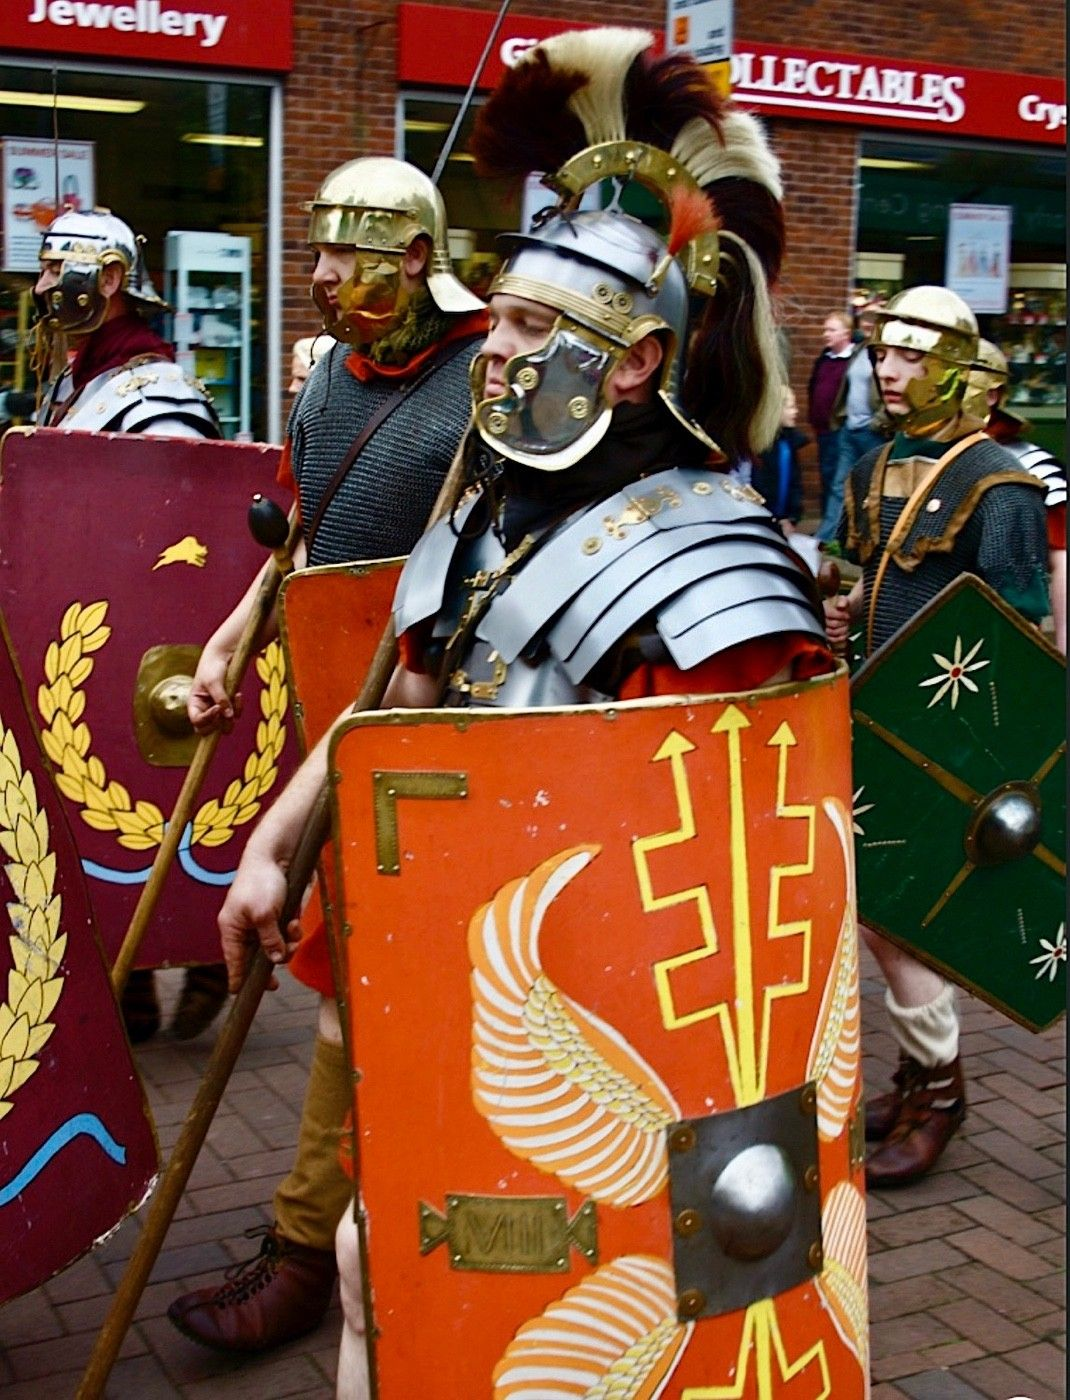 When we got to Carlisle it was Roman Day! The streets were full of Centurions!